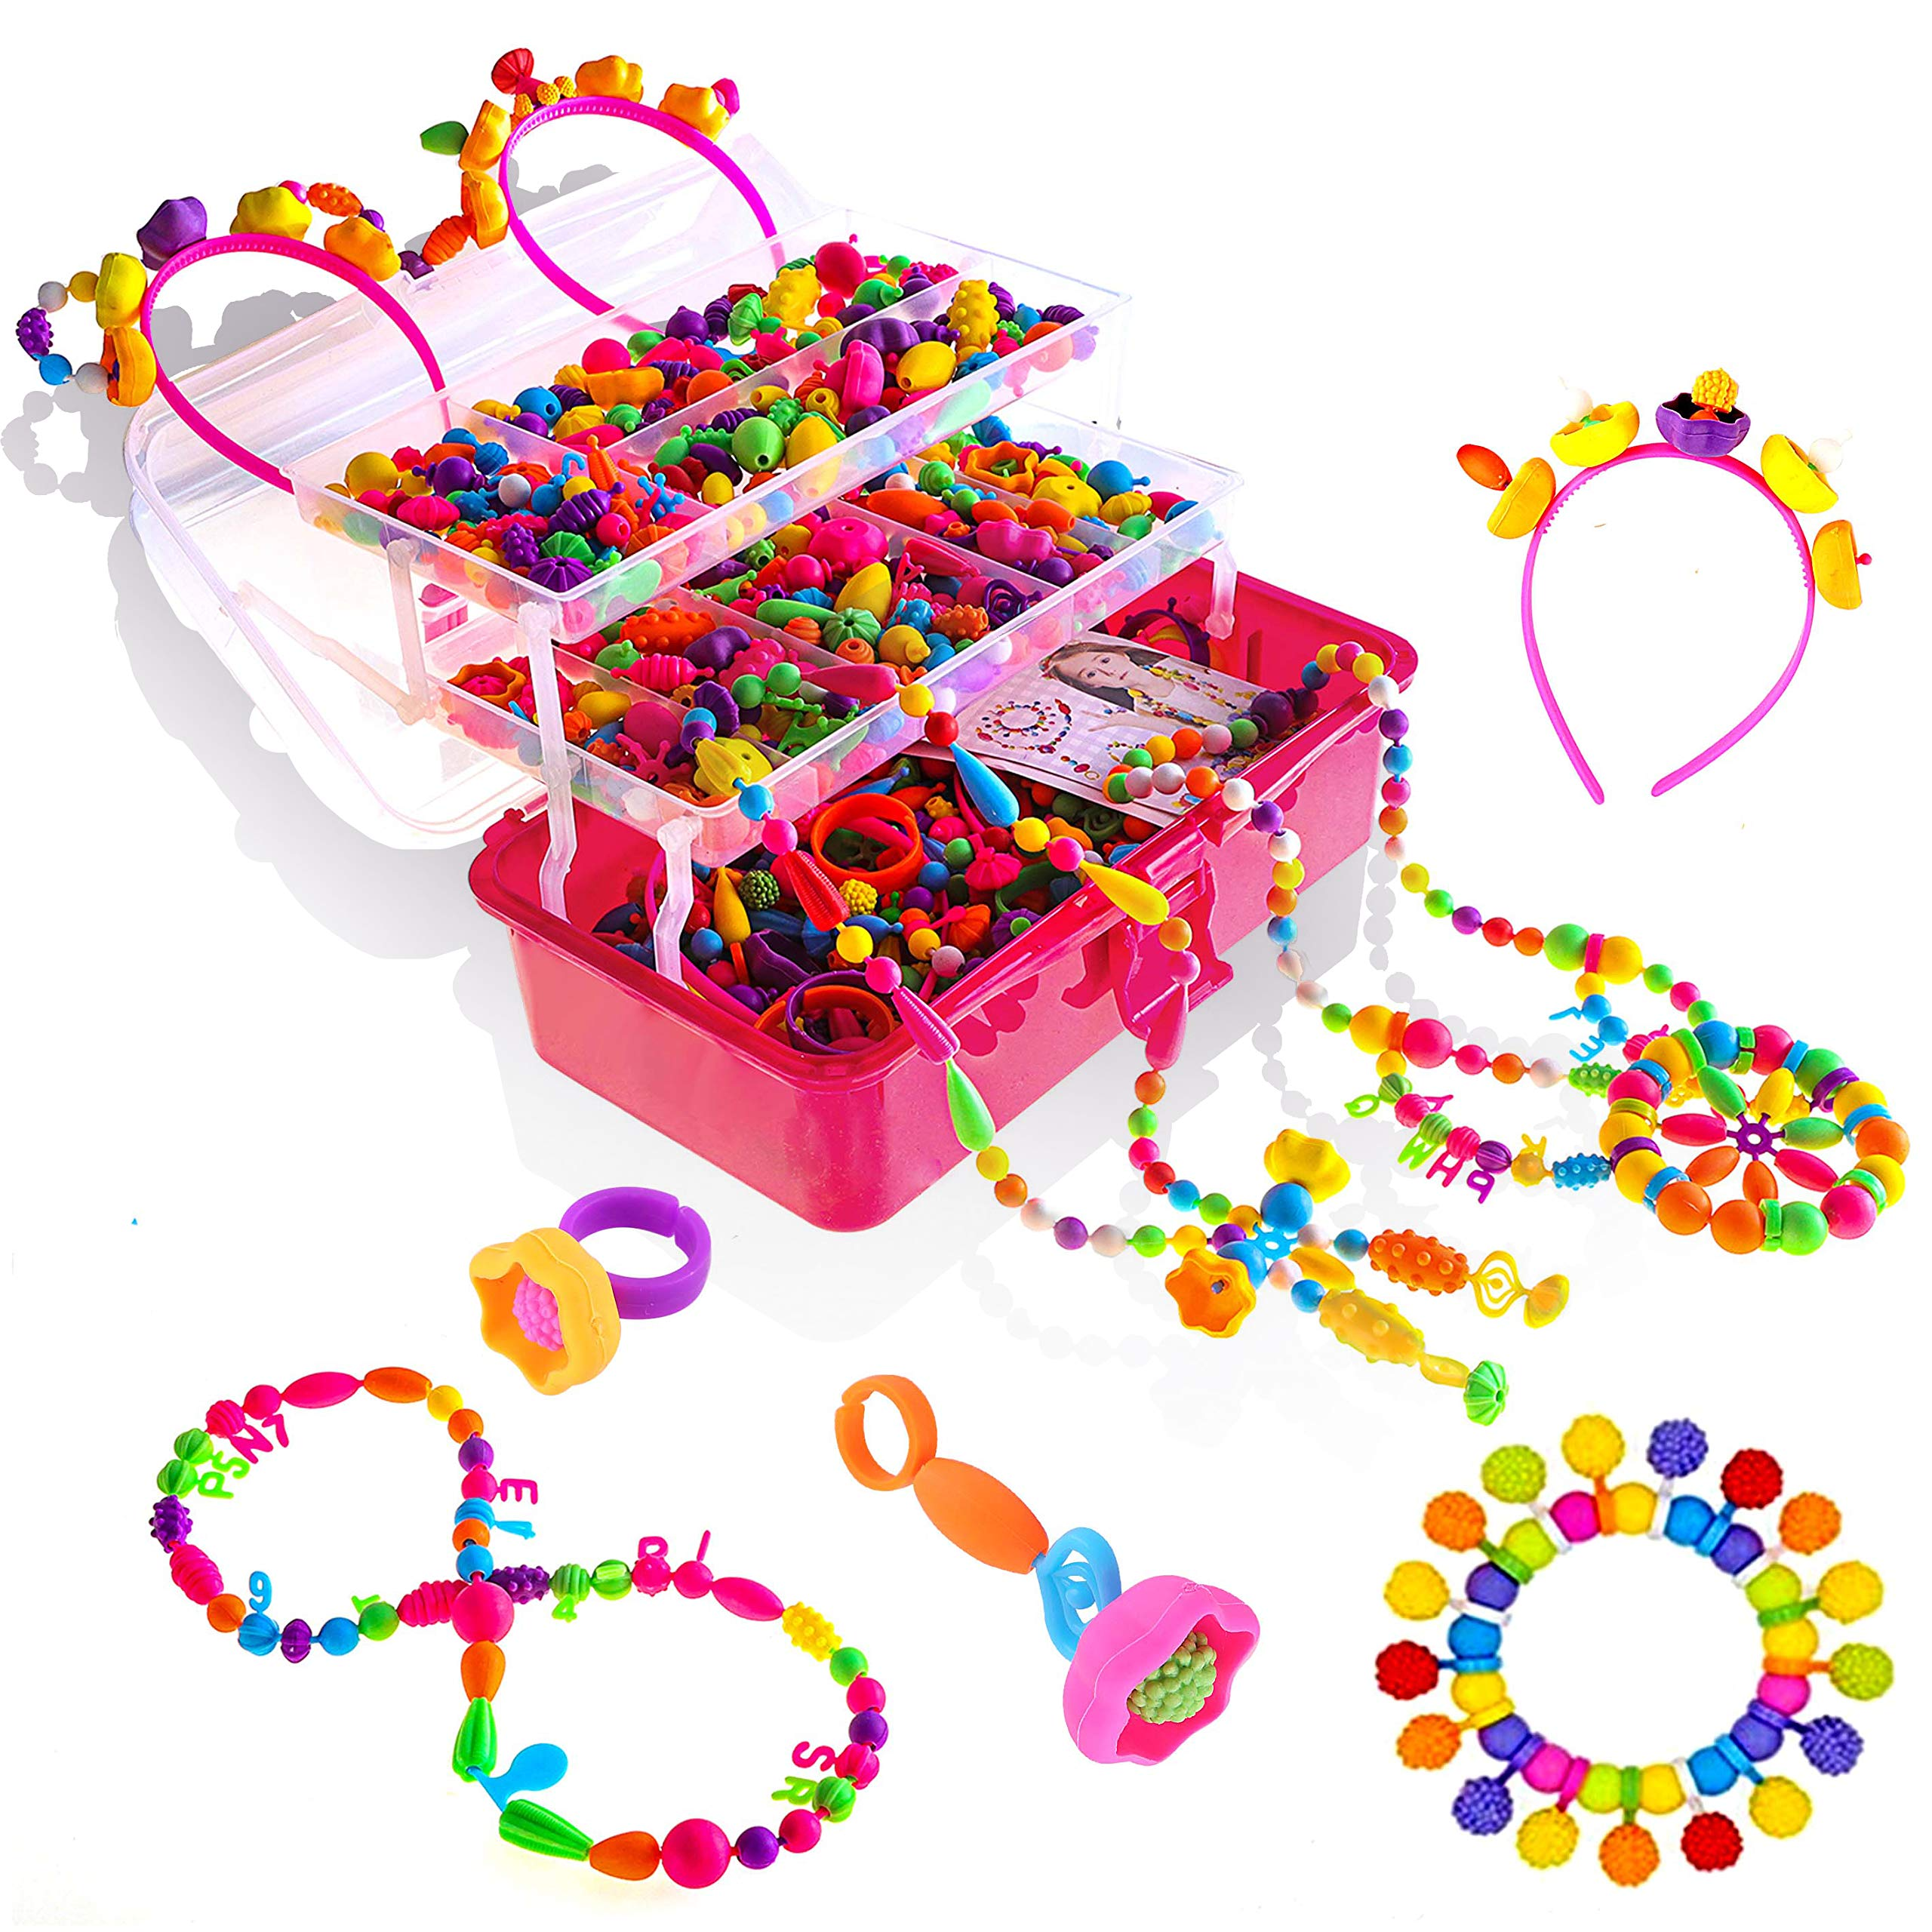 Toys Gift for 3,4,5,6,7,8,9 Year old girls Pop Beads Jewelry making kit,Snap Beads to Make Hairband Necklace Bracelet and Art & Craft Creativity DIY Educational Toys Gift for girl age 3-9 (1000+ pcs)